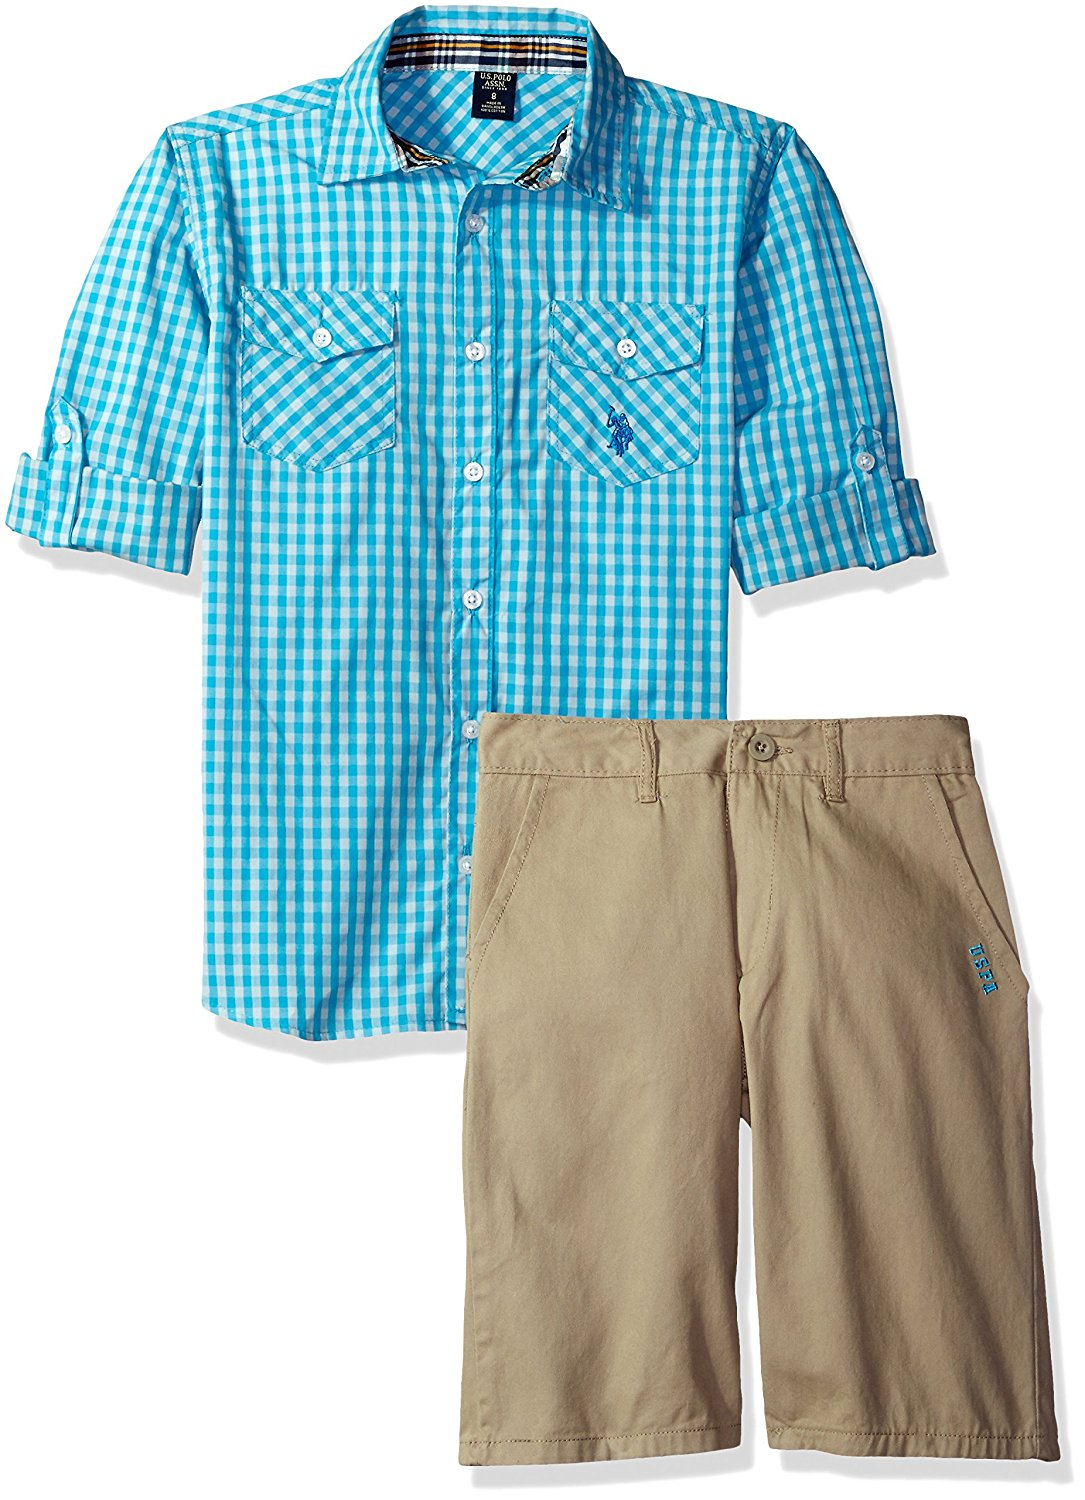 U.S. Polo Assn. Boys' Big Long Sleeve Gingham Check Woven Shirt and Twill Short